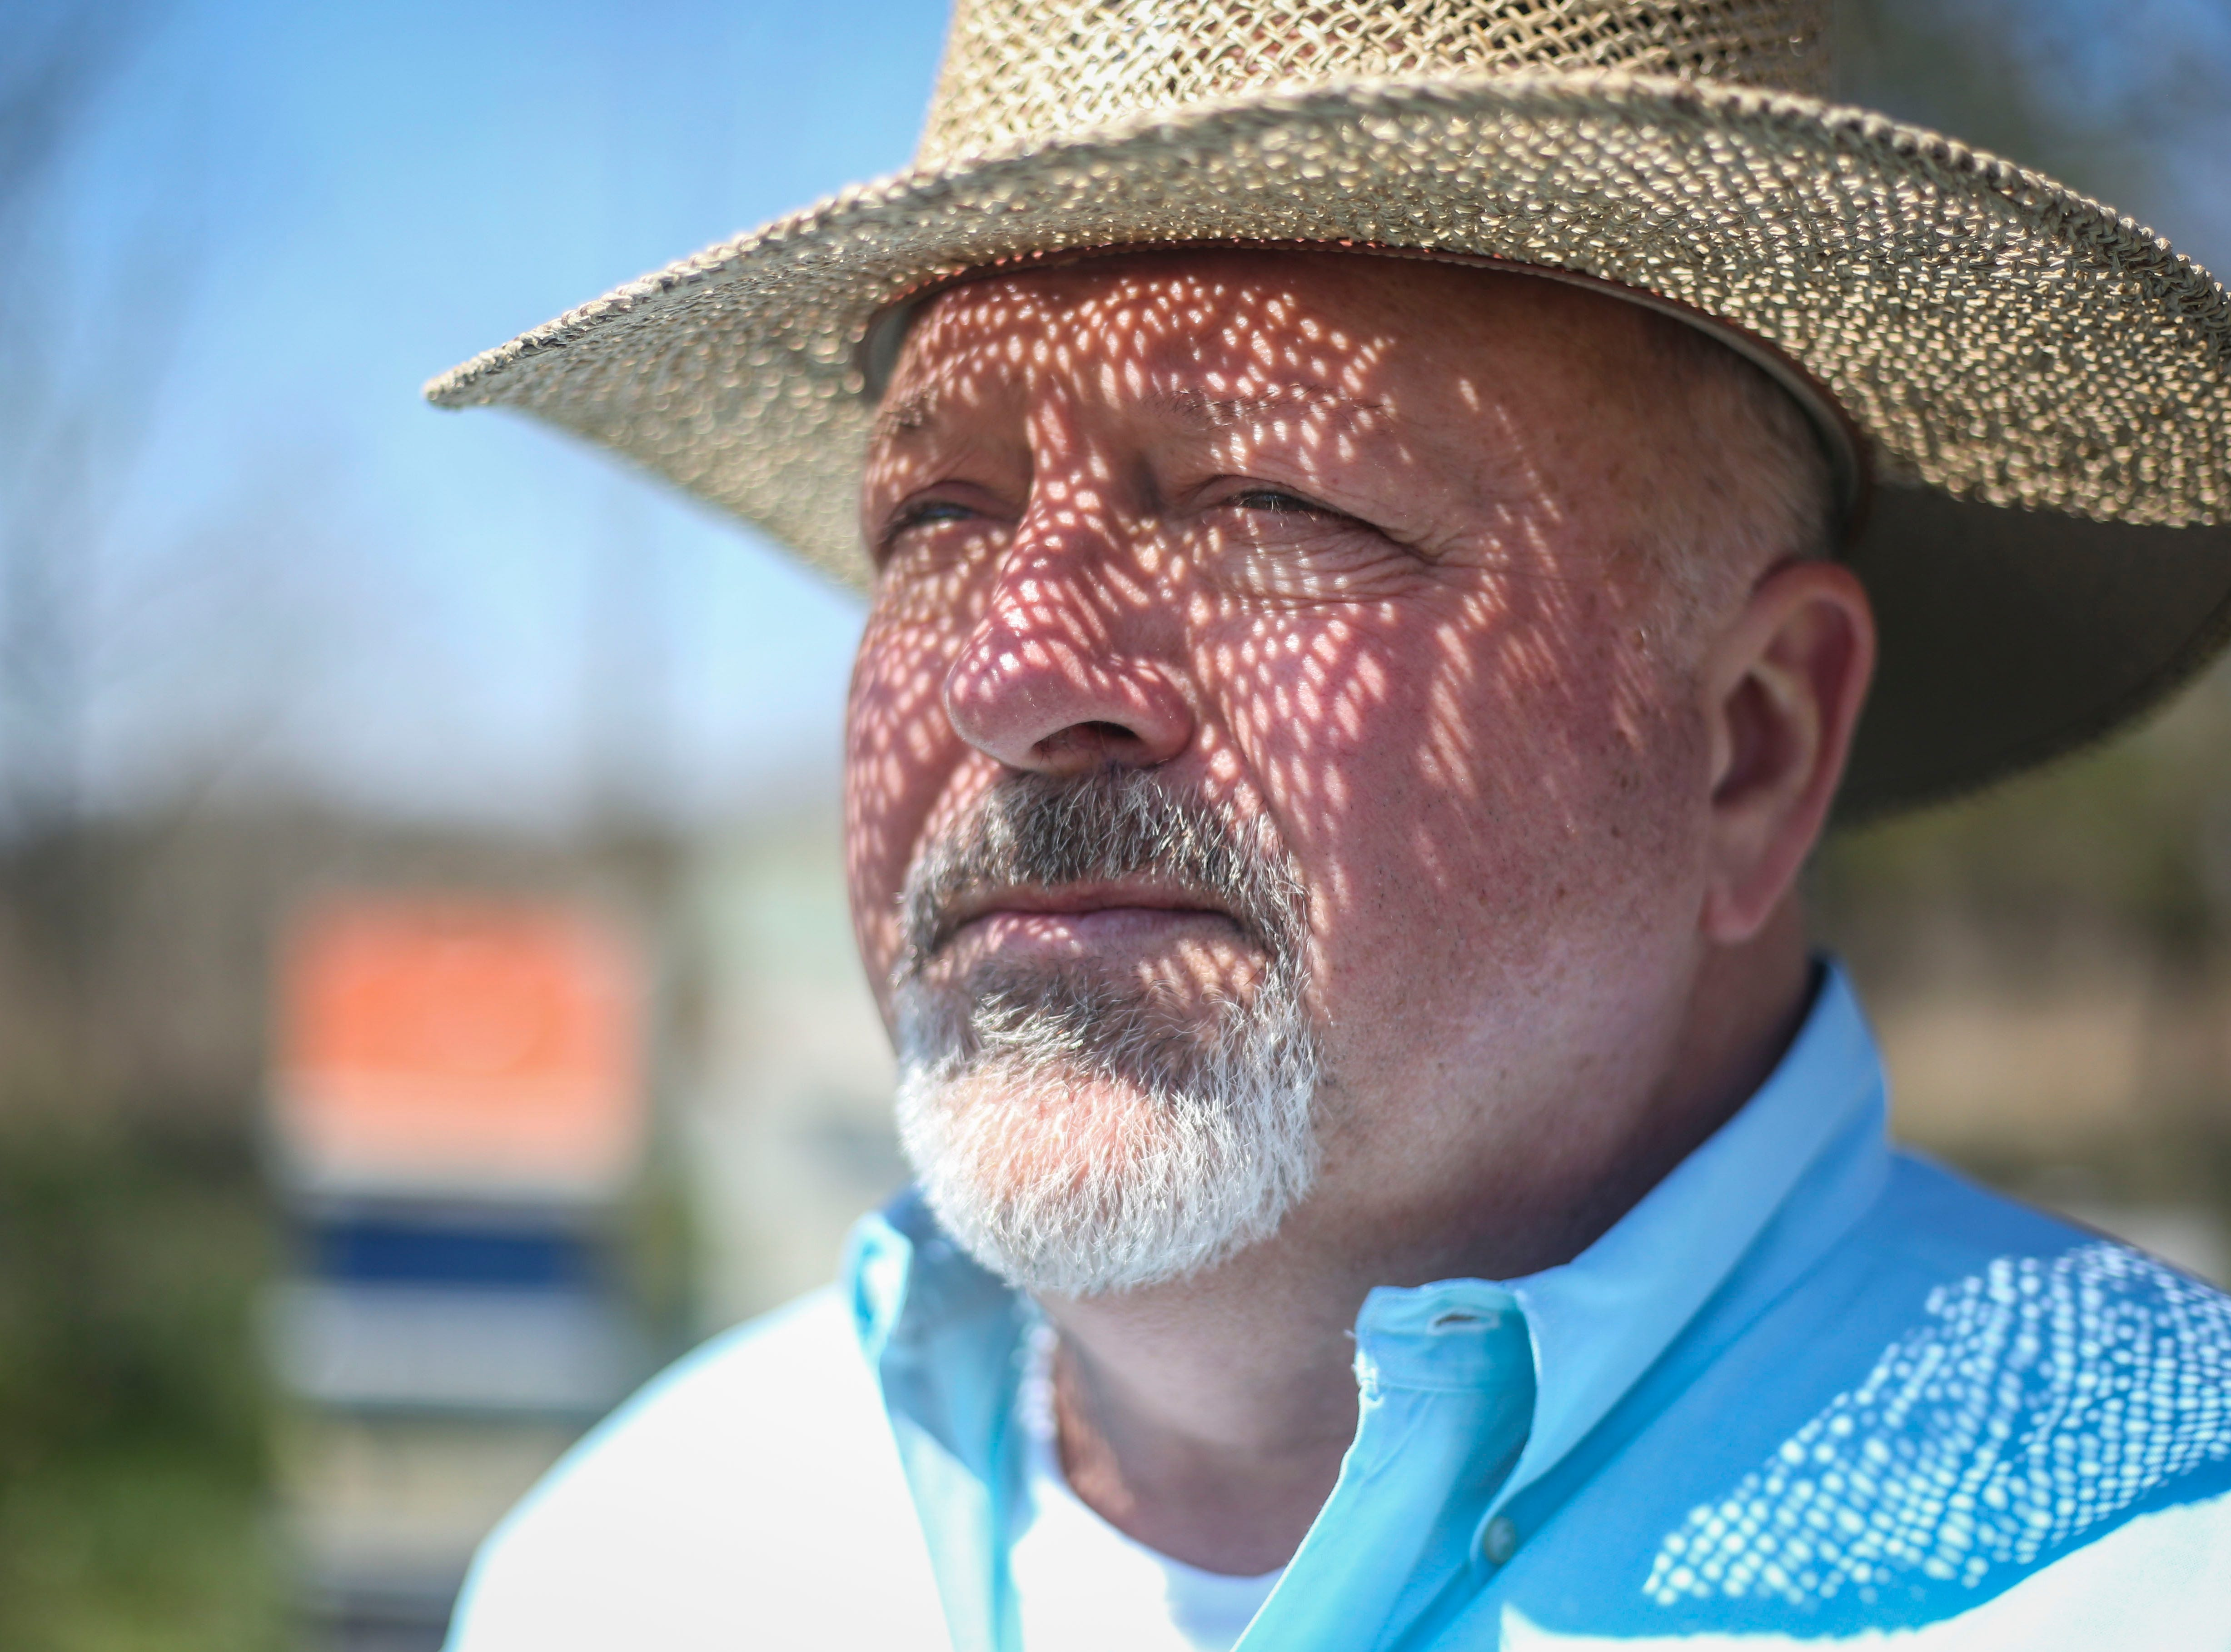 Richard Hosey, owner of Hosey Honey, a small family run honey company, stands for a portrait in his bee yard in Midway, Ky. on Wednesday, April 3, 2019. Their Hosey's Queen's Triple Crown honey is used in the sweetener in the $1,000 Woodford Reserve Kentucky Derby mint julep.